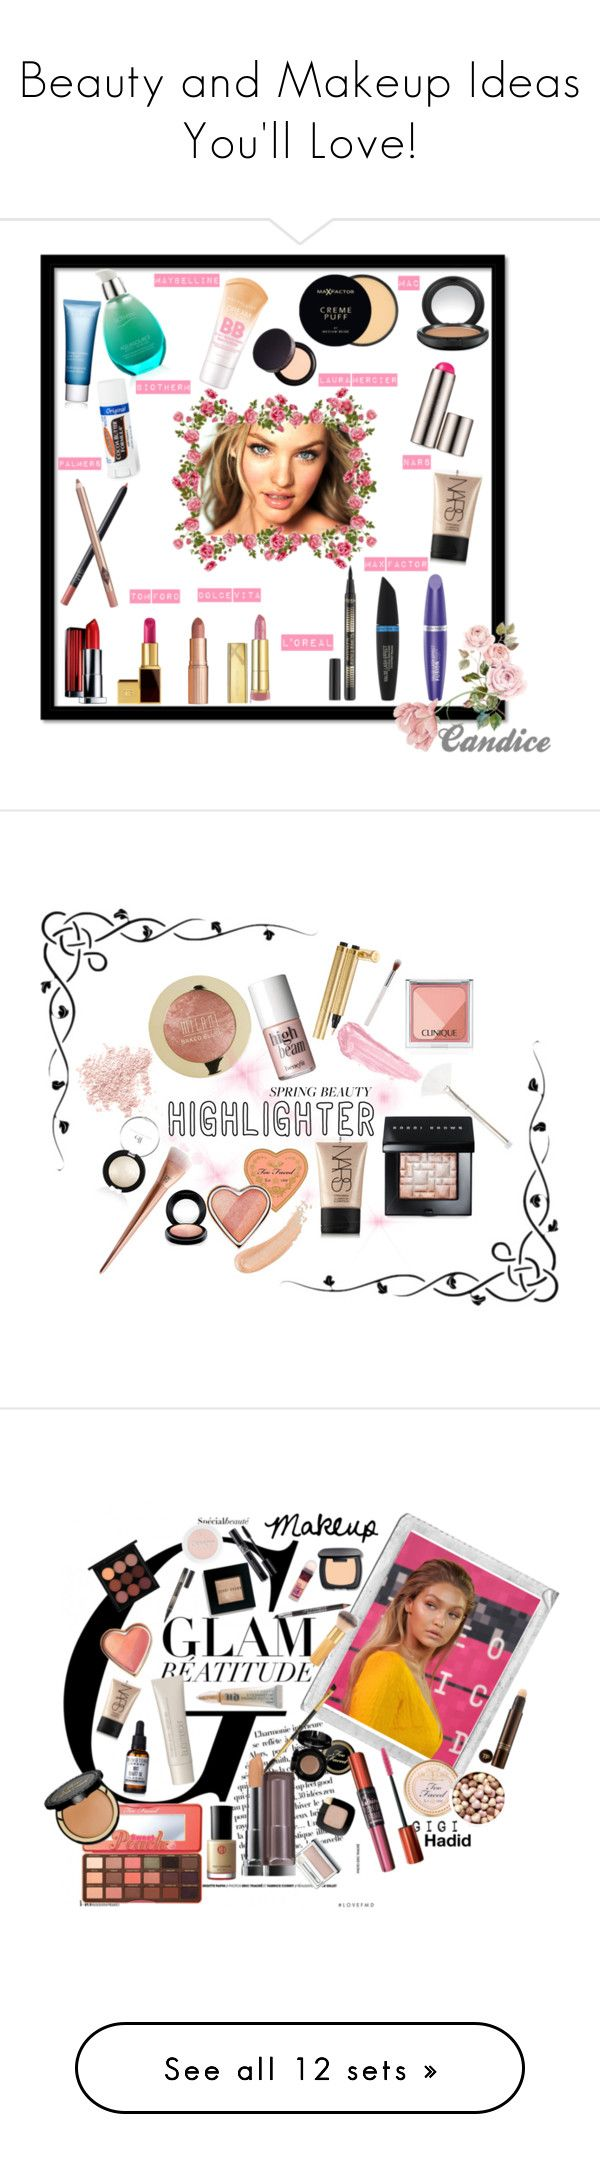 """""""Beauty and Makeup Ideas You'll Love!"""" by sarahbearsy on Polyvore featuring beauty, Clarins, Maybelline, Laura Mercier, Biotherm, MAC Cosmetics, NARS Cosmetics, Max Factor, L'Oréal Paris and Palmer's"""